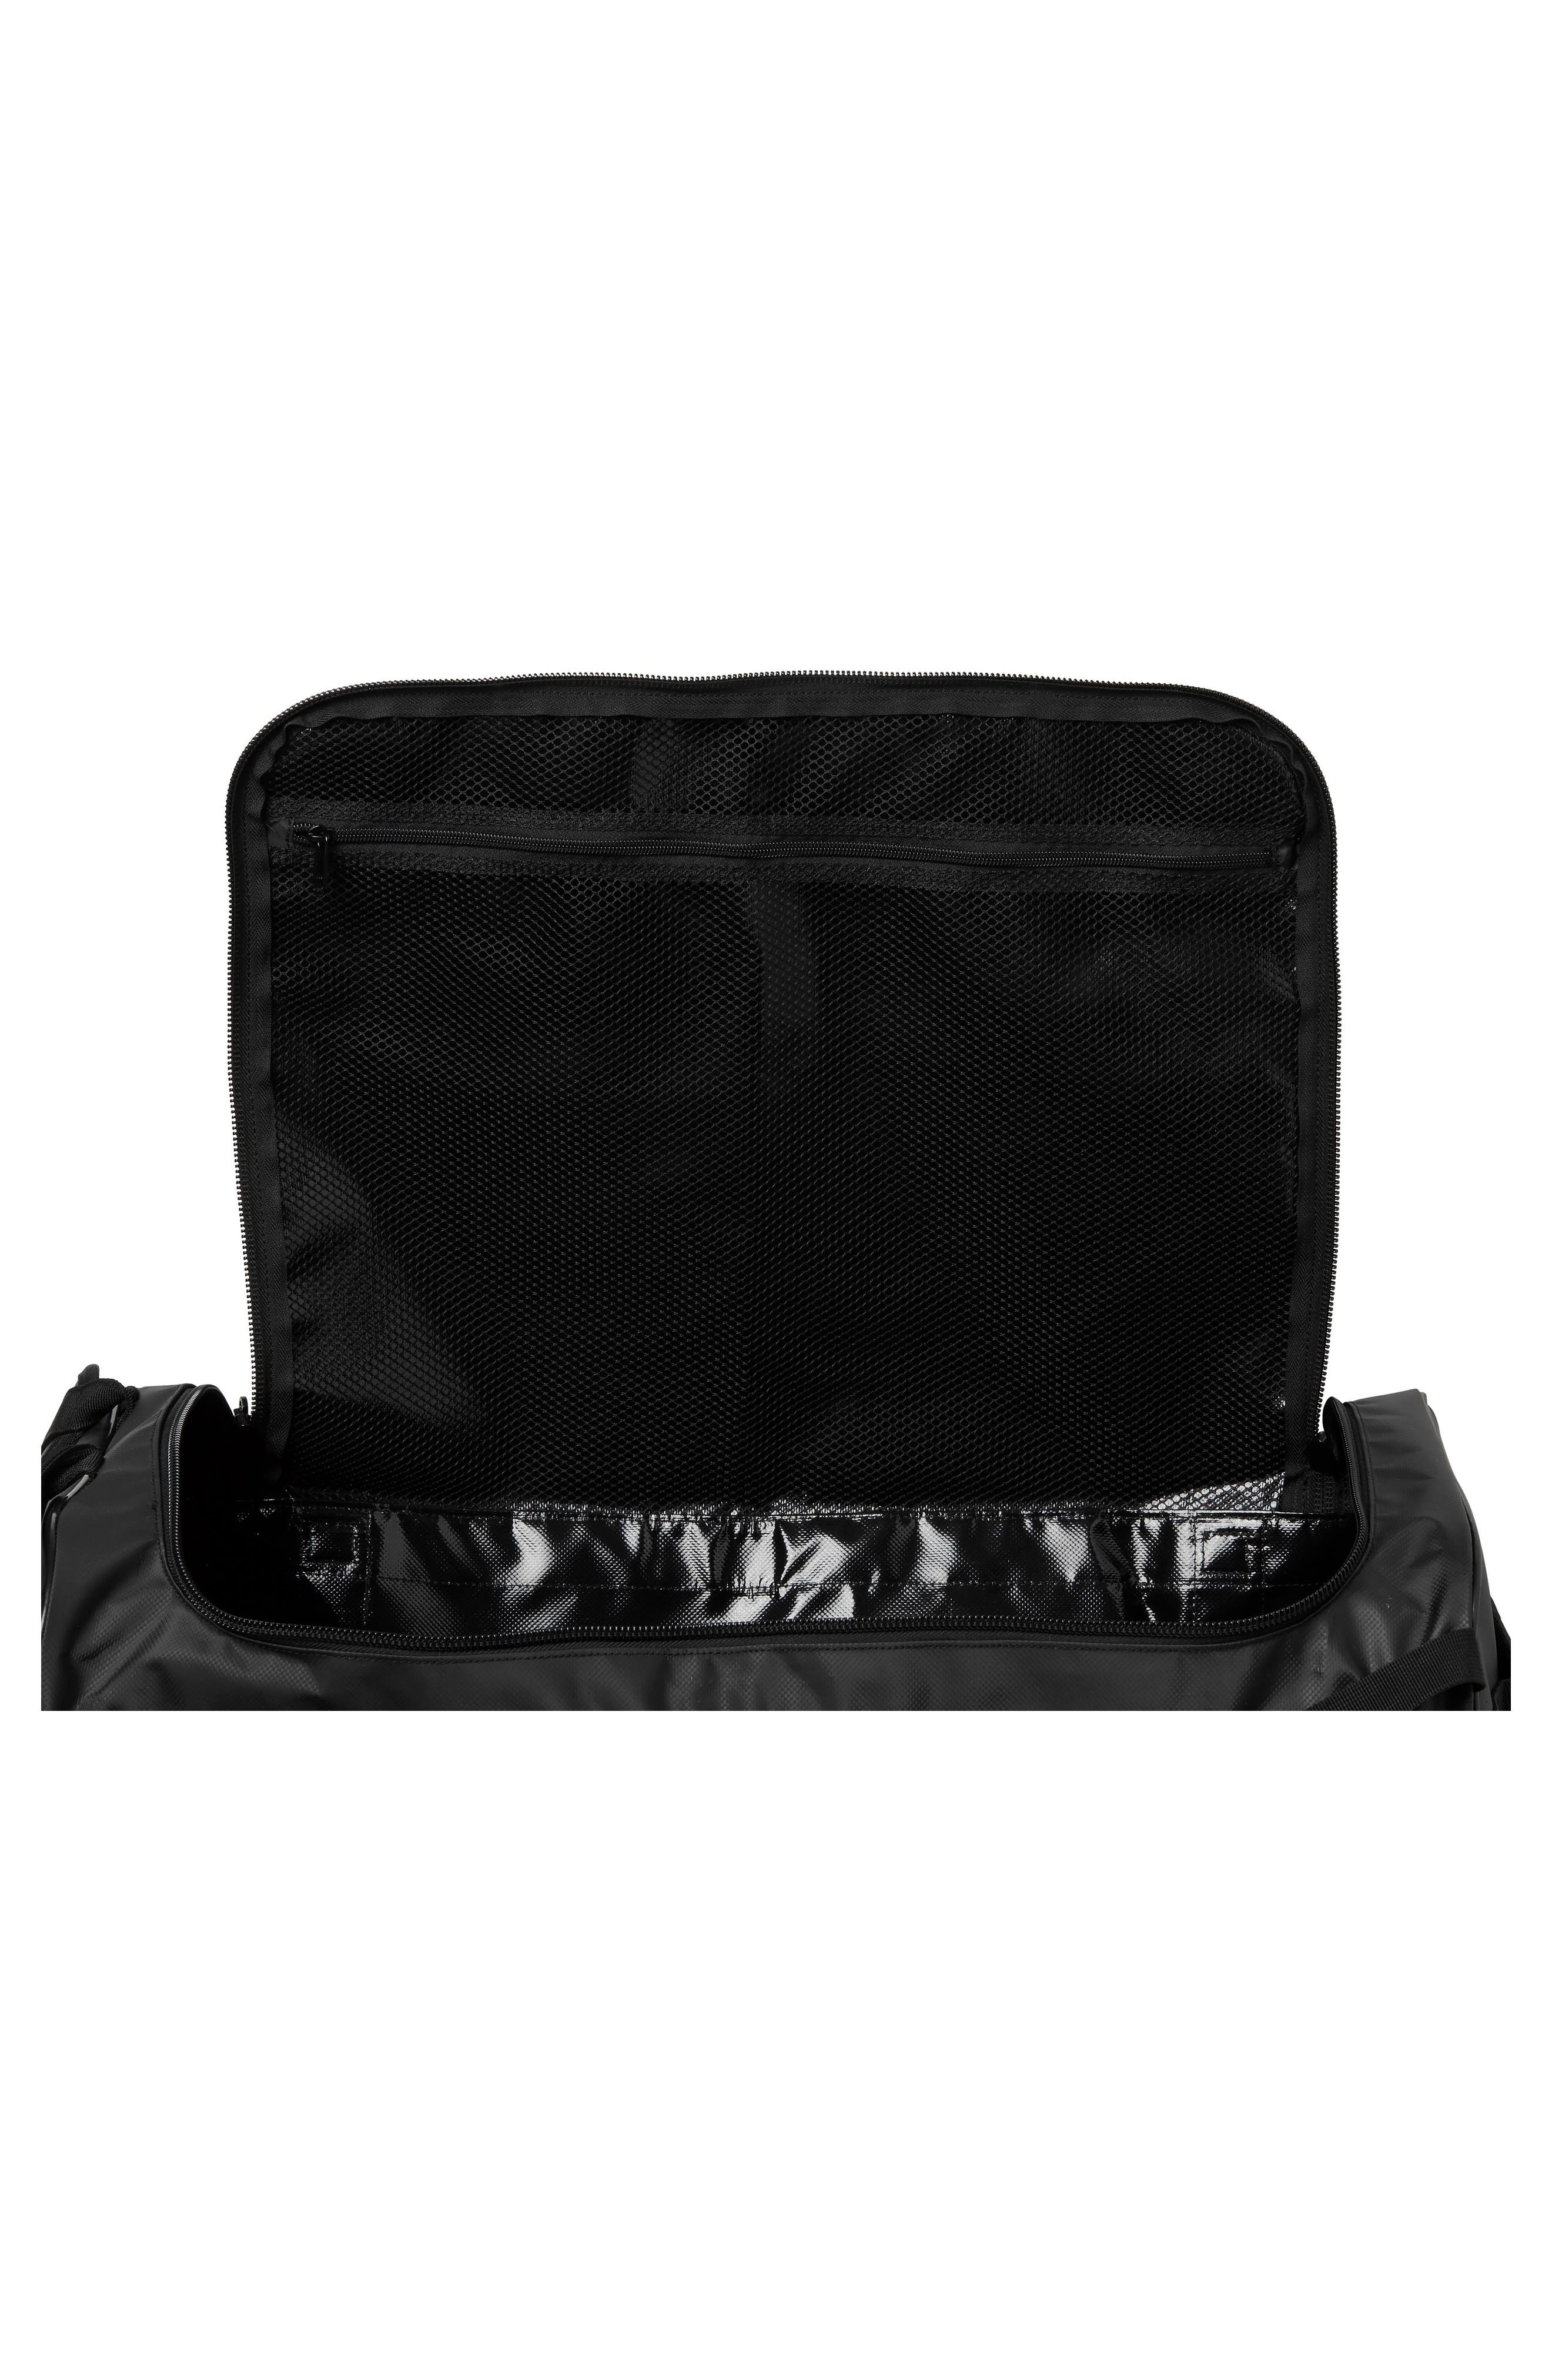 New Classic Large Duffel Bag,                             Alternate thumbnail 2, color,                             001